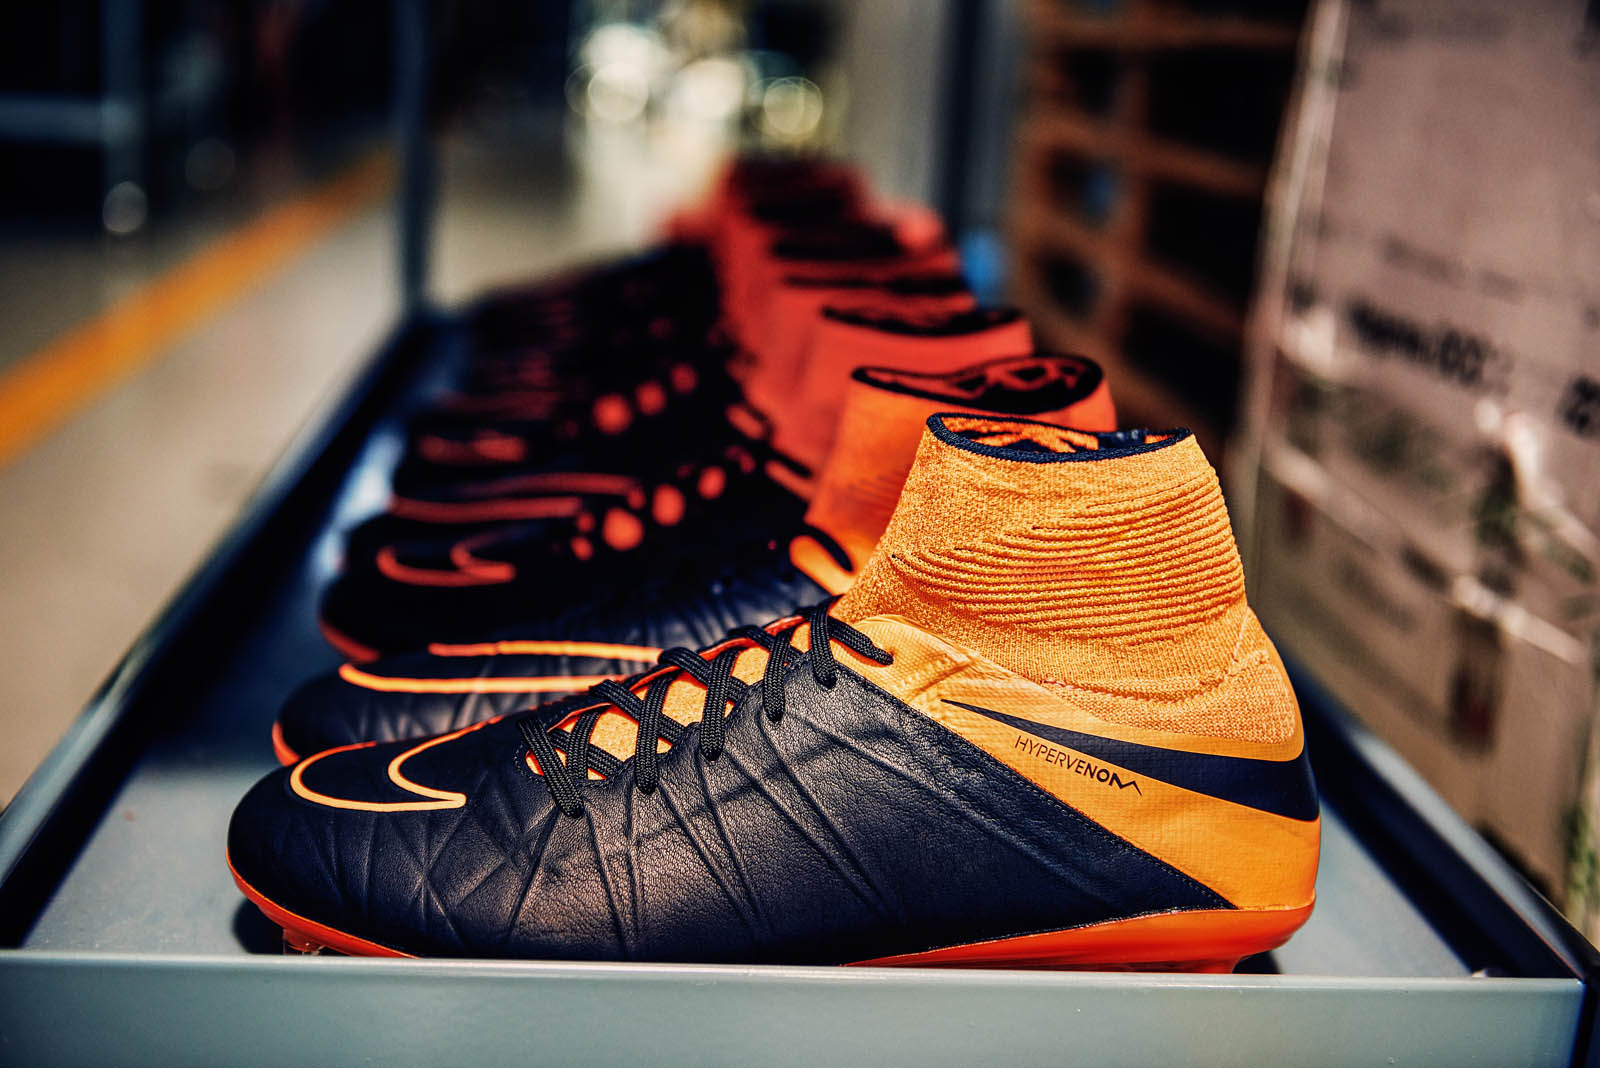 Boot design by nike - The Nike Tech Craft Football Boots Collection Is The Most Advanced Leather Boot Collection Ever Set To Be Available From 13 August 2015 At Selected